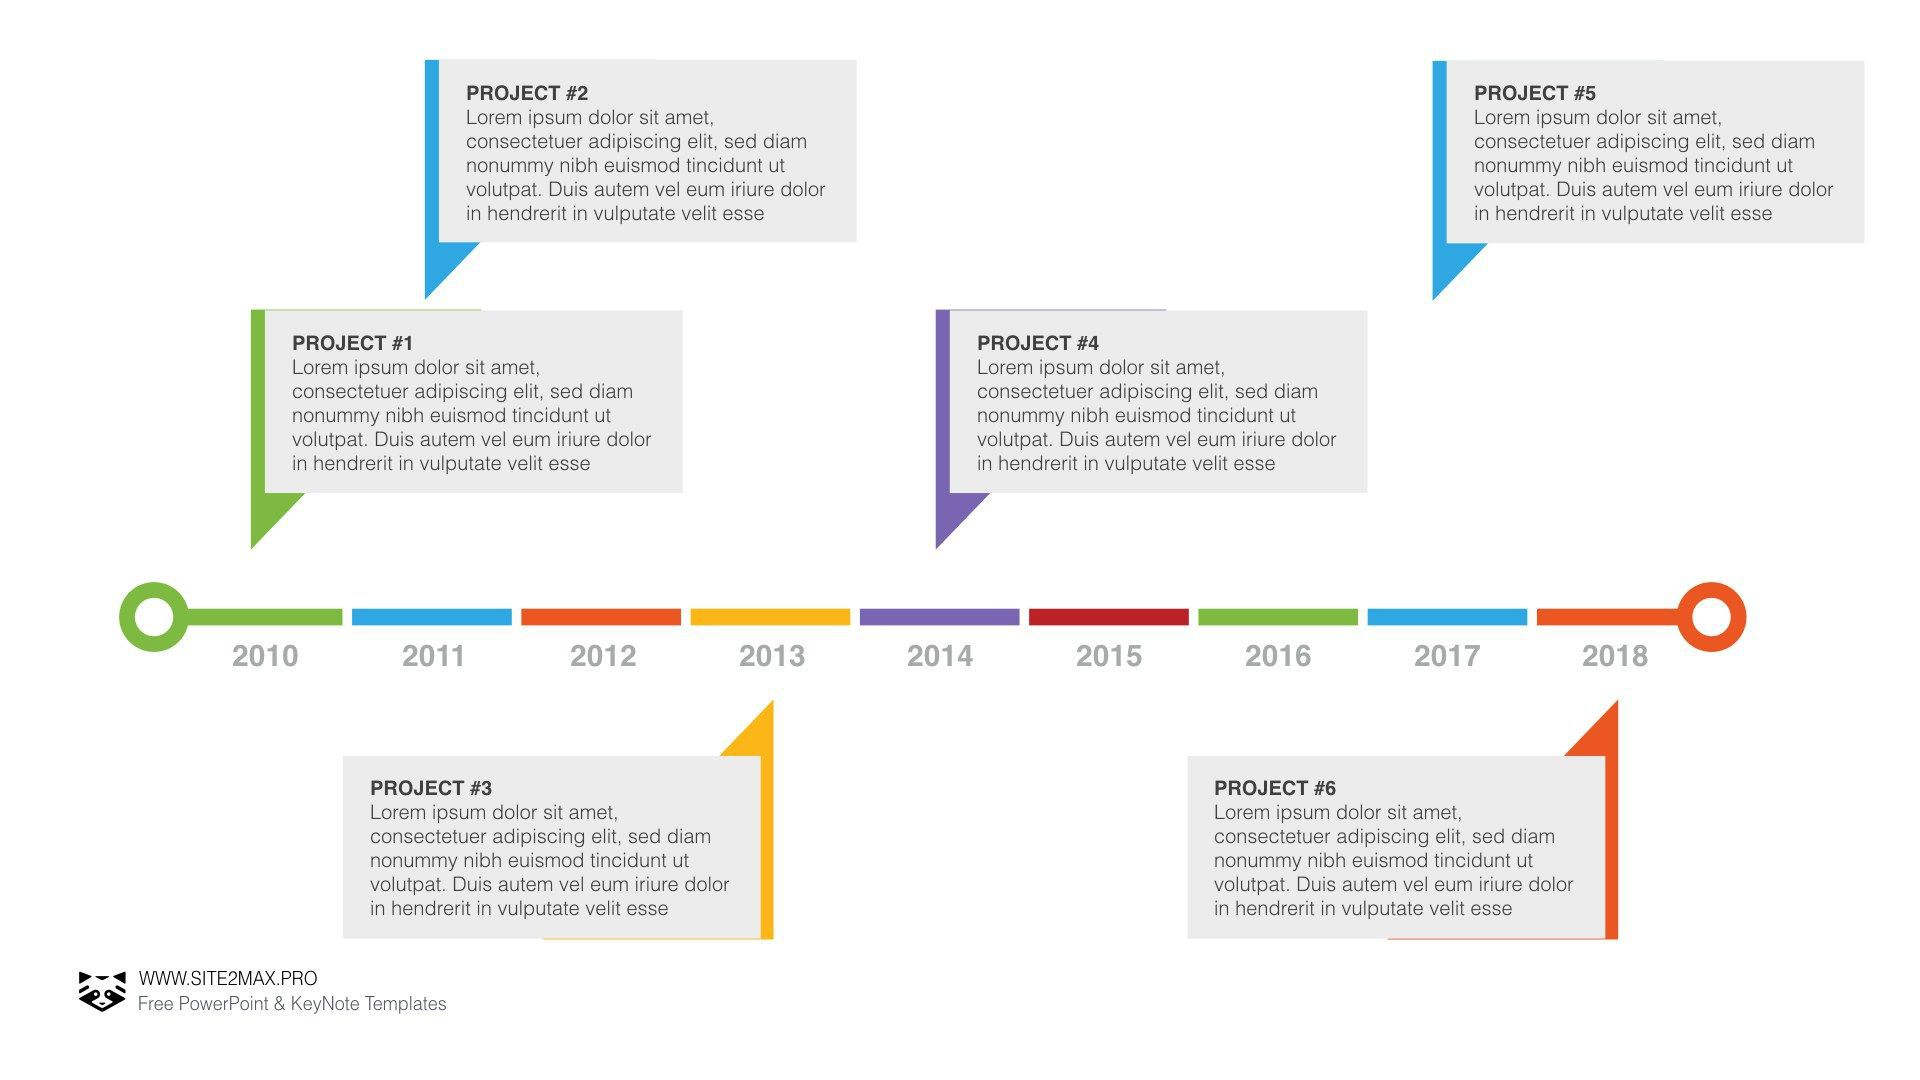 004 Remarkable Powerpoint Timeline Template Free Download Concept  Project HistoryFull